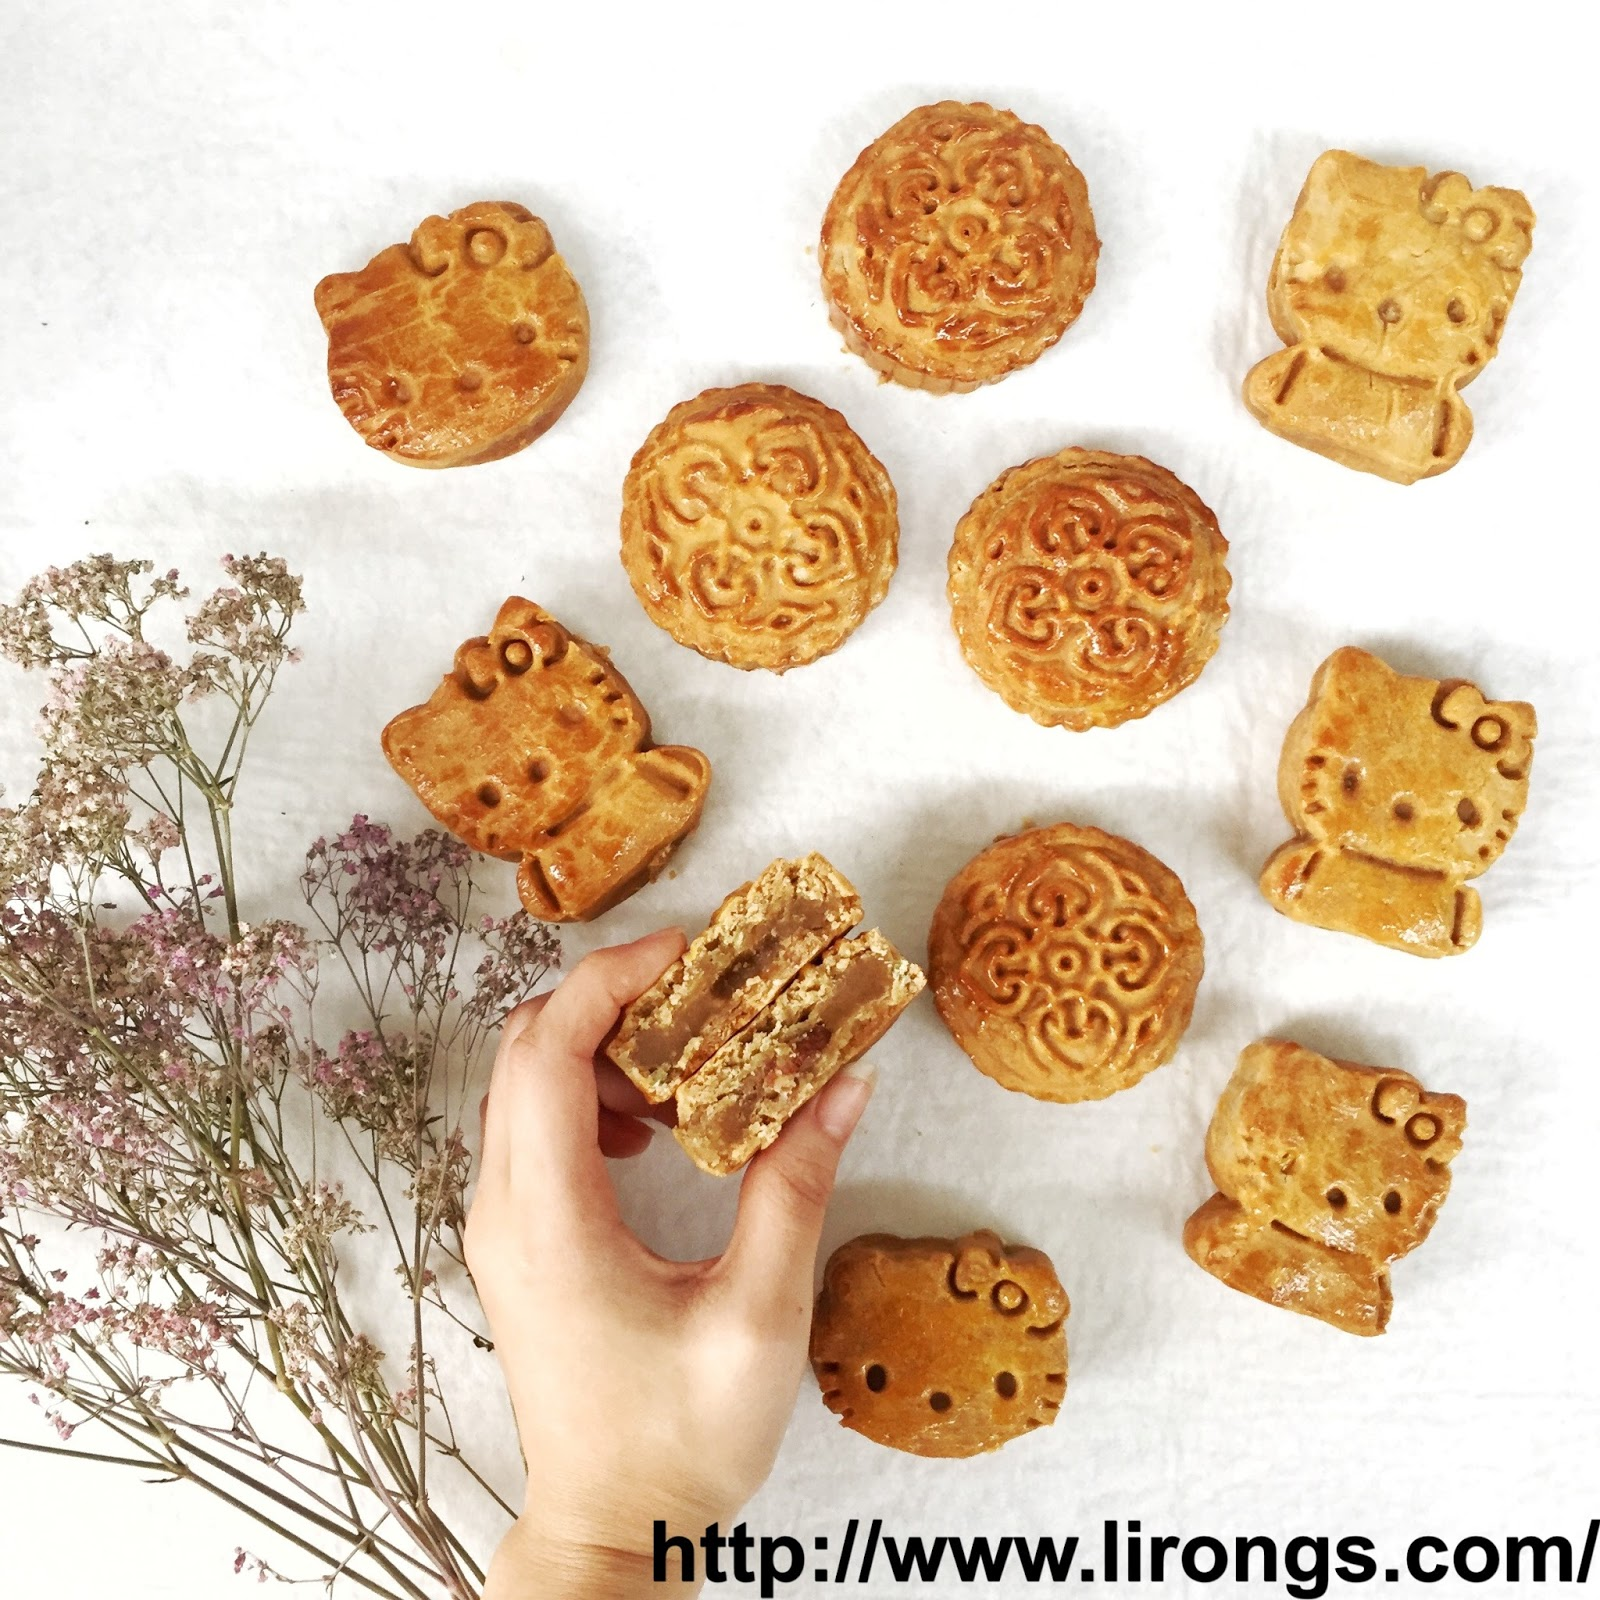 Lirong a singapore food and lifestyle blog happy mid autumn festival these are not the usual big mooncakes these are mini ones and filling with sugar free green bean paste also added some granola into the paste for extra kristyandbryce Choice Image